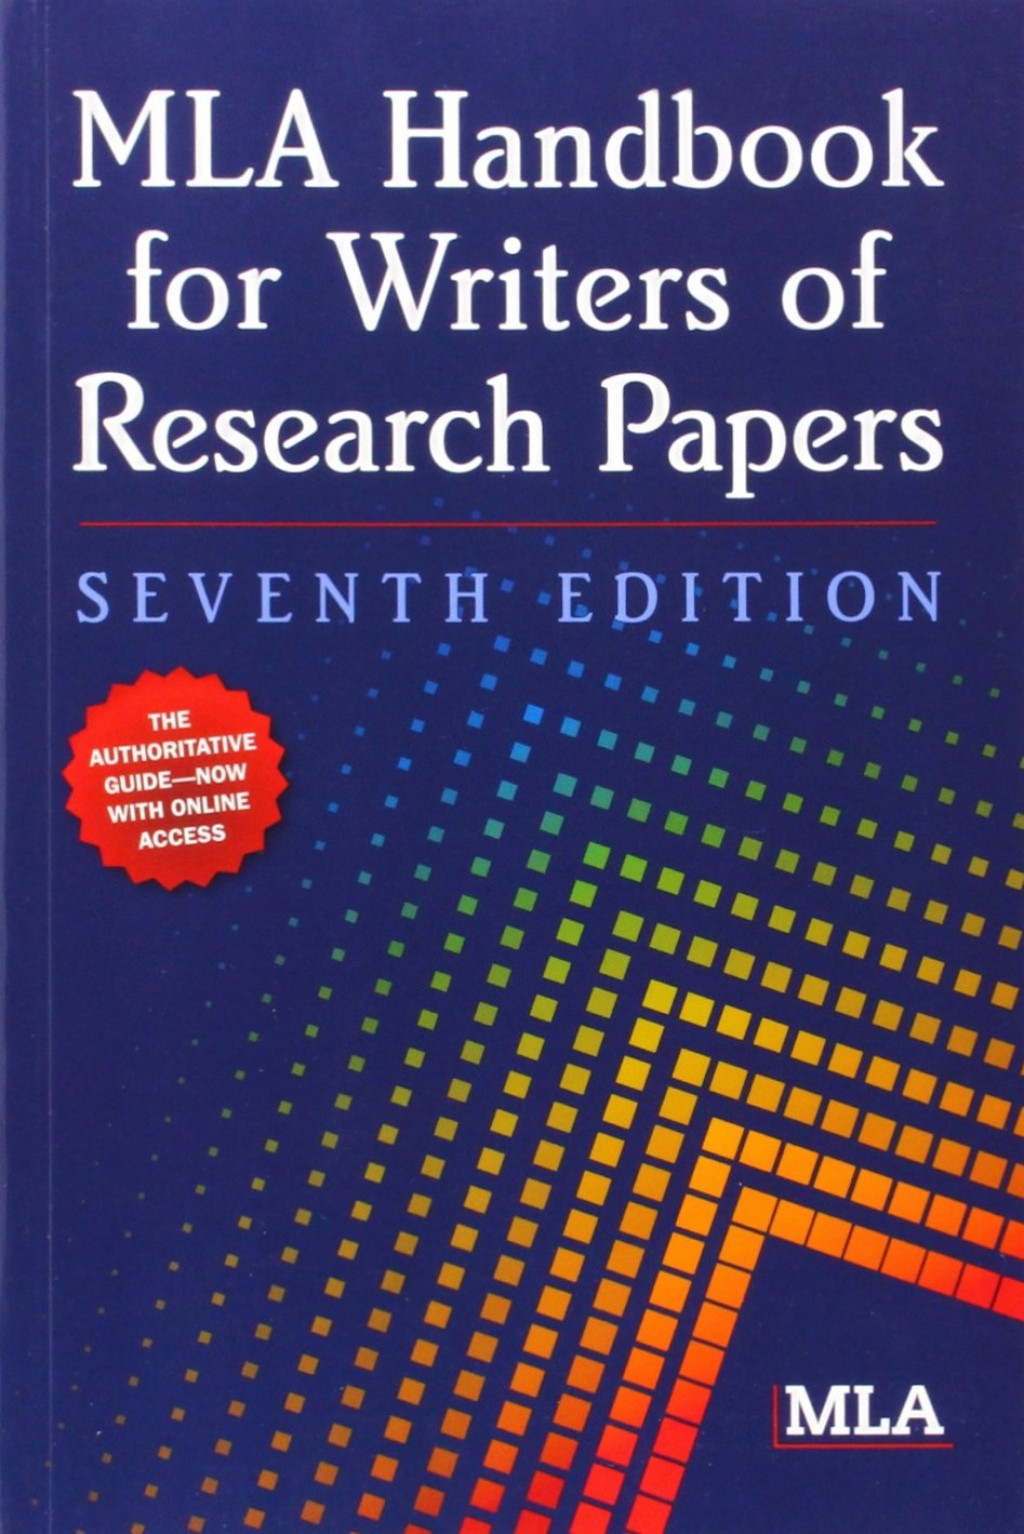 003 Mla Handbook For Writing Researchs Pdf 71lknvqs6gl Beautiful Research Papers Writers Of 7th Edition Free 6th 2009 Large